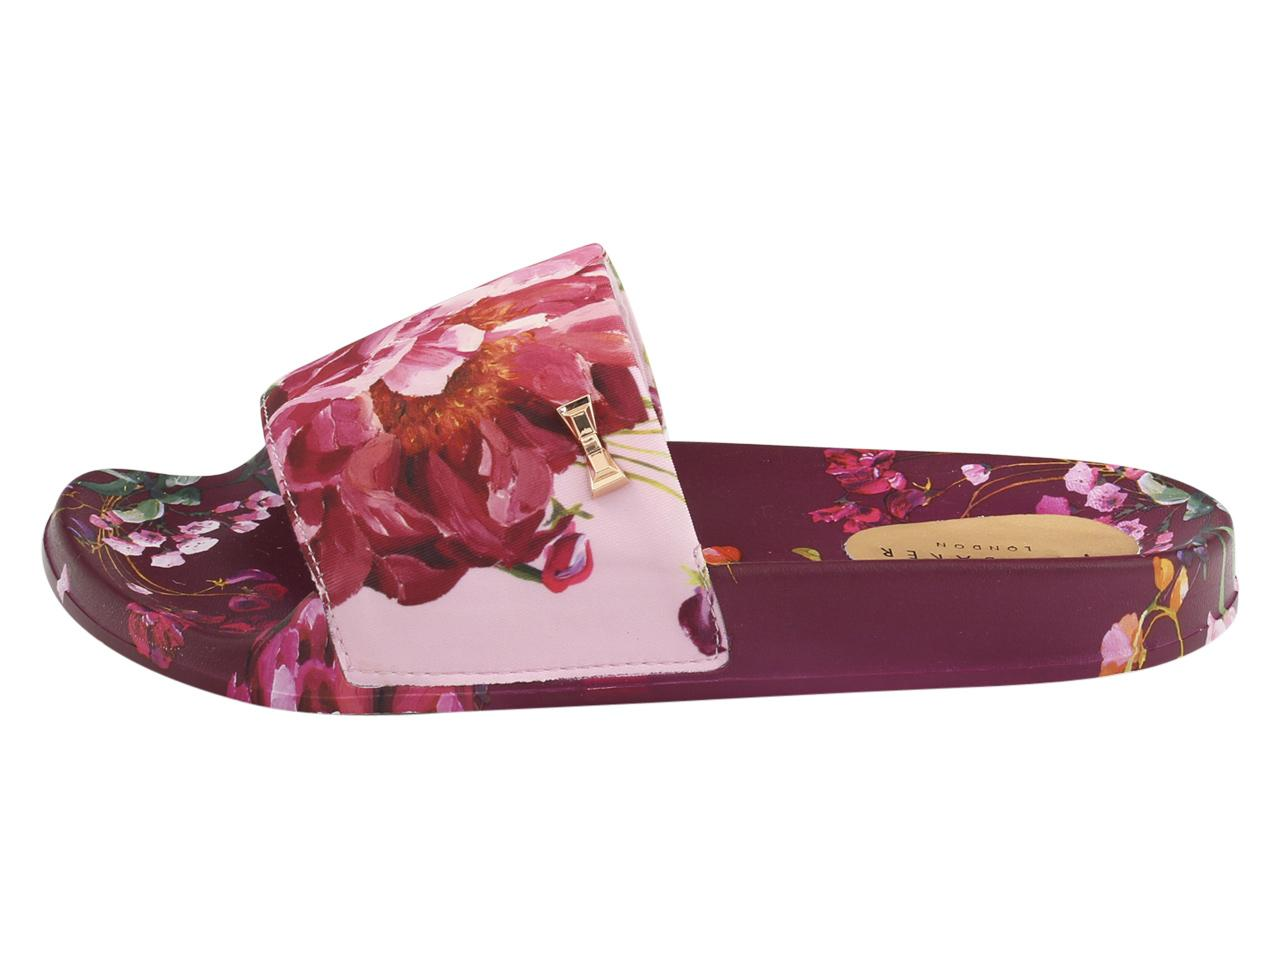 4bf13eedba1d4f Ted Baker Women s Qarla Slides Sandals Shoes